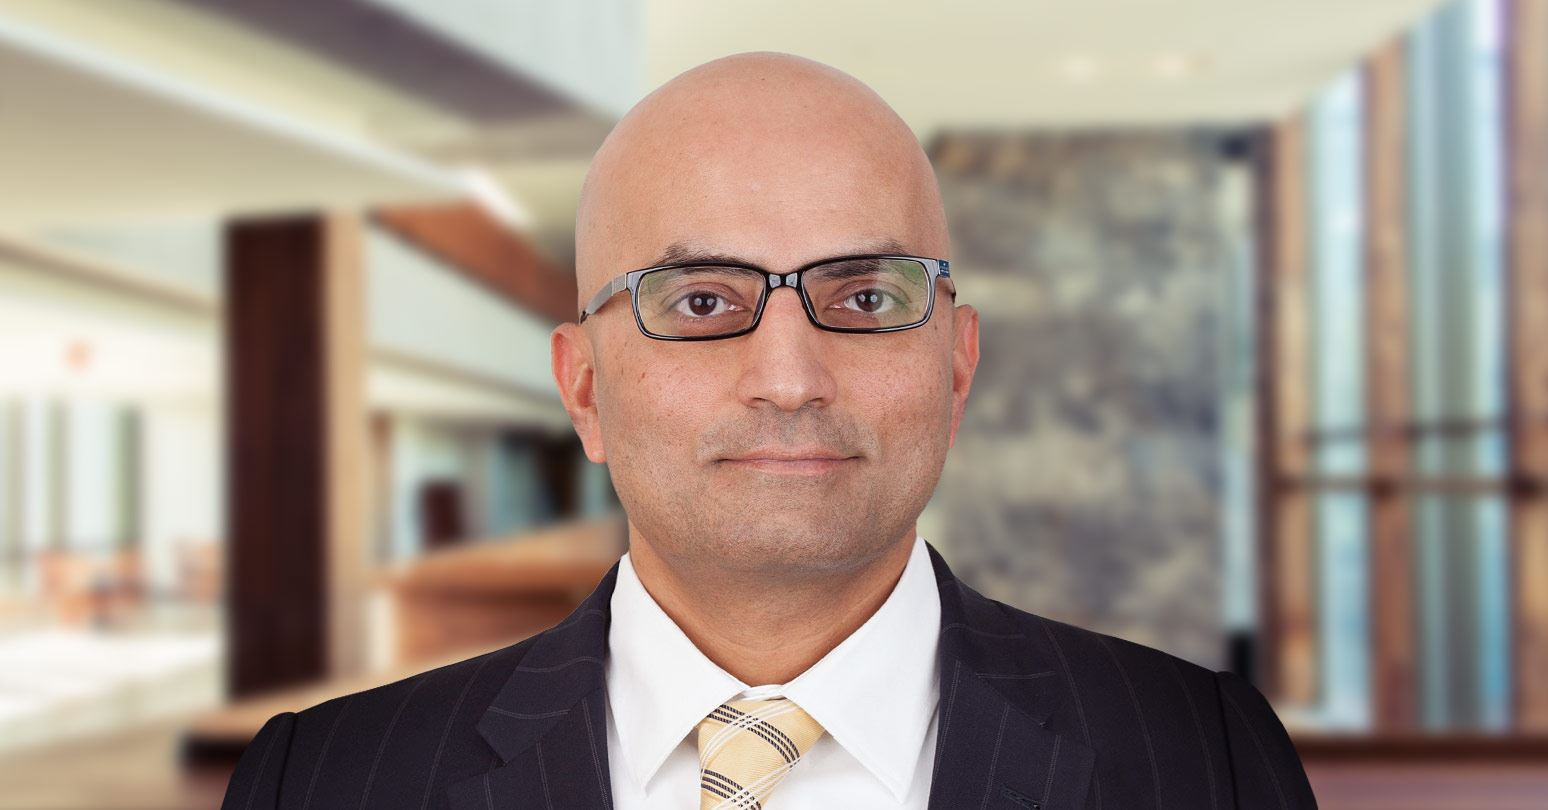 Rashid Wasti, EMBA '03, to chair Ivey's new Equity, Diversity, and Inclusion Advisory Council